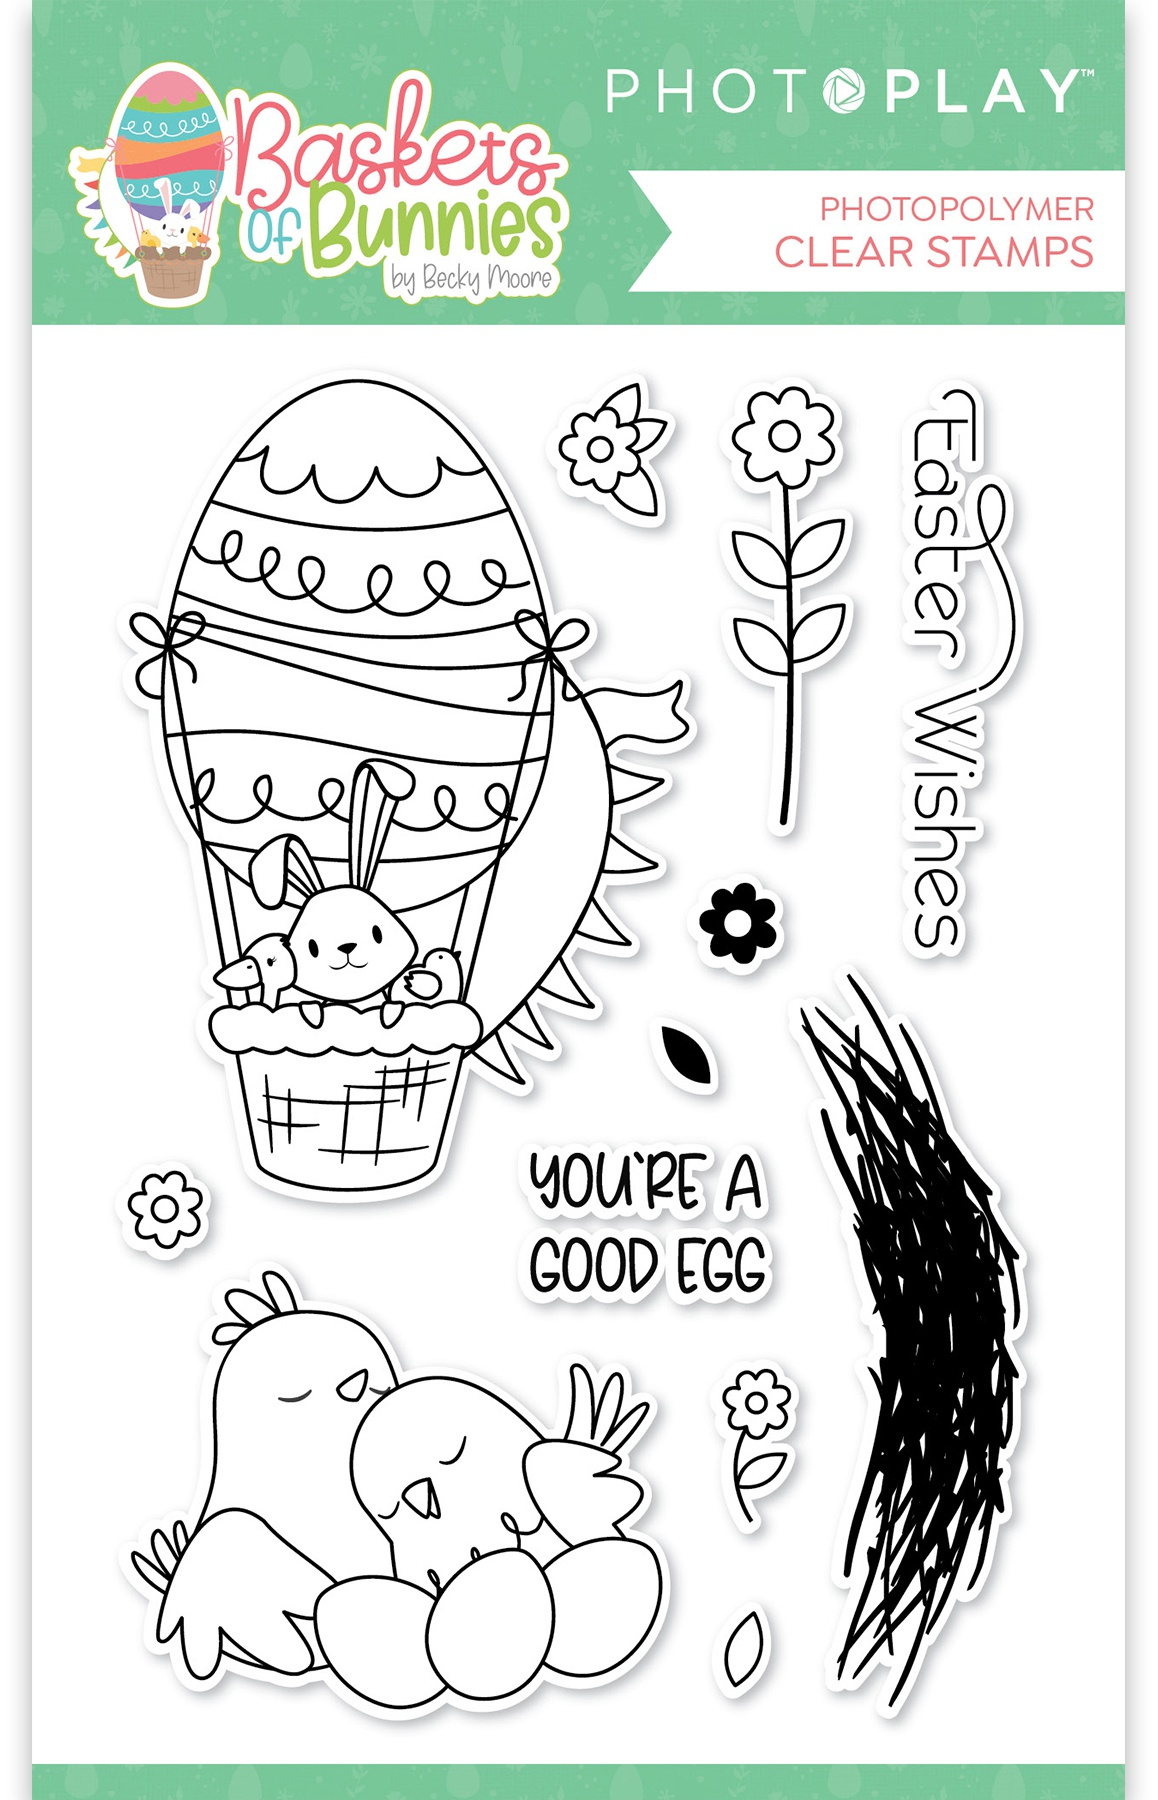 PhotoPlay Photopolymer Stamp-Baskets Of Bunnies